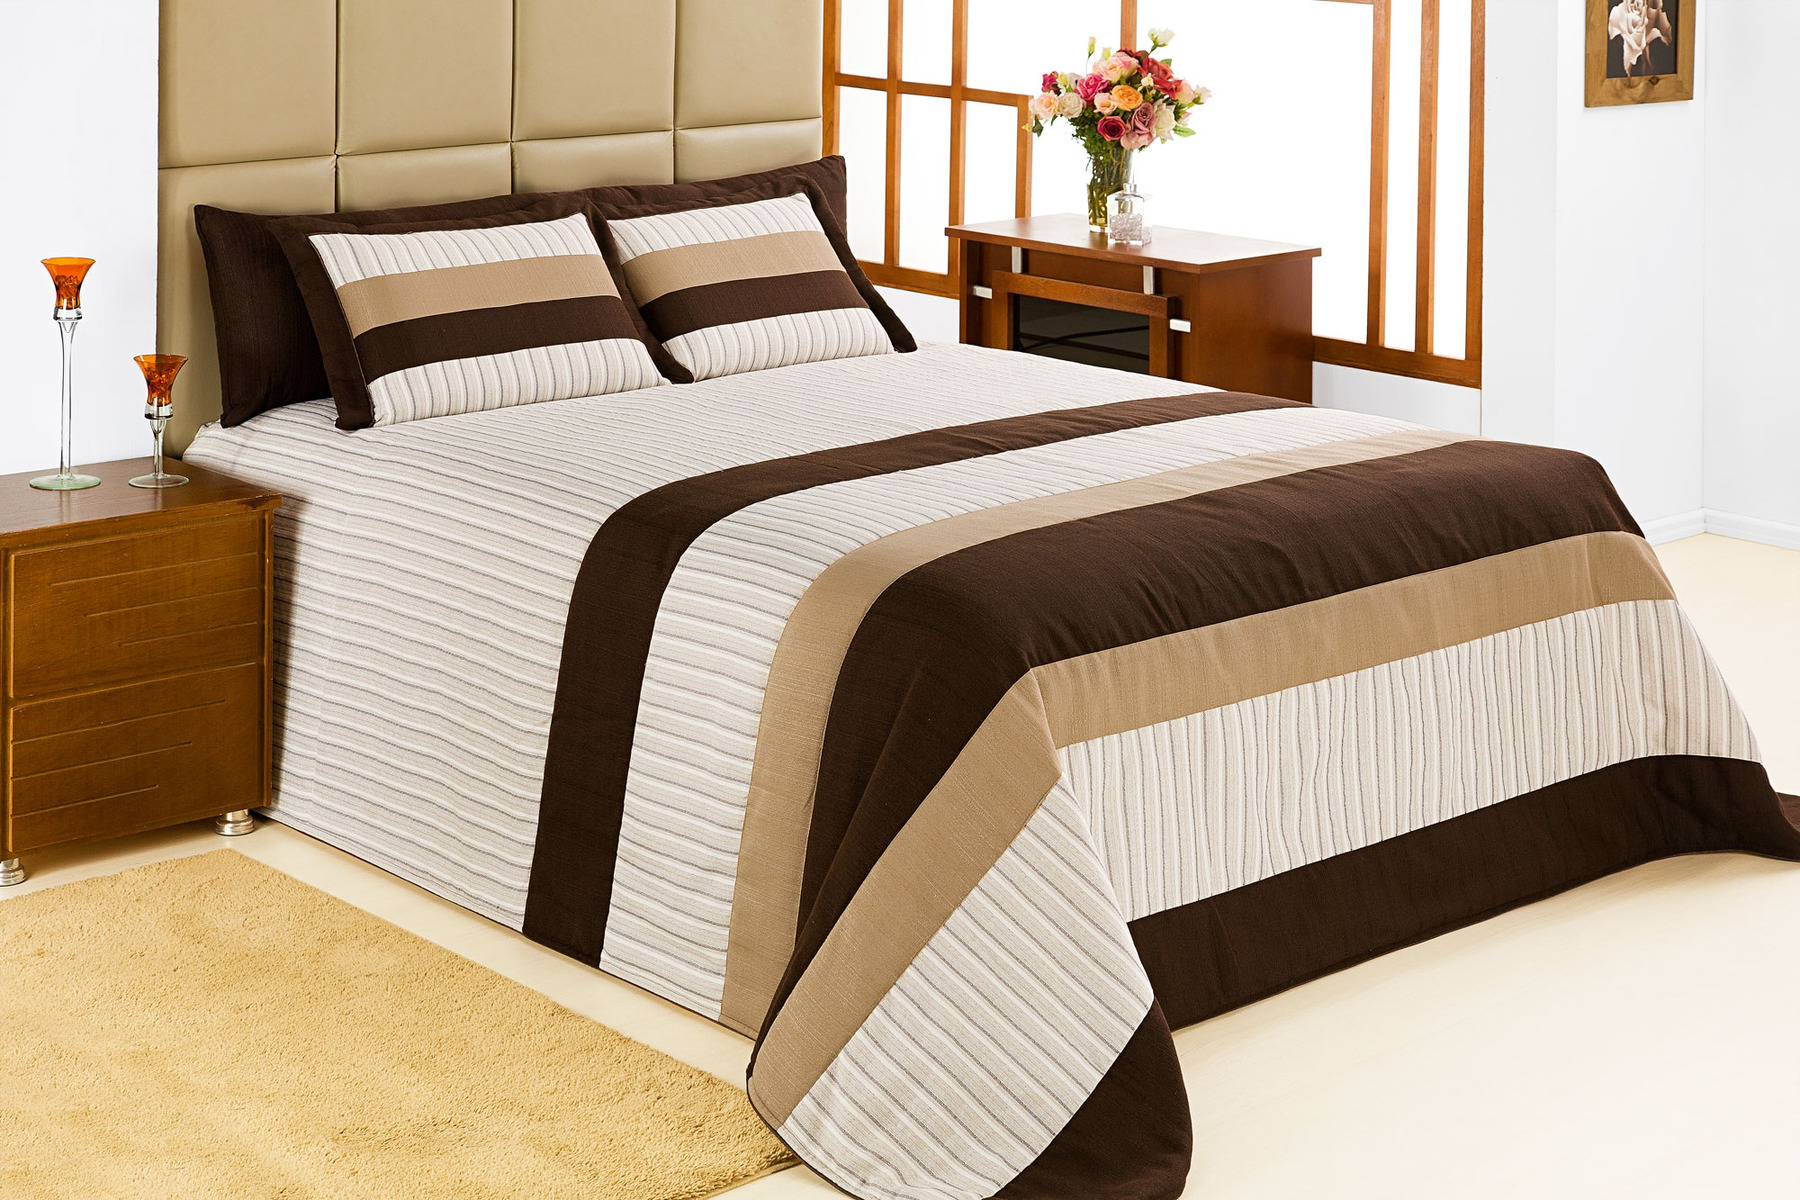 Crib for sale in thailand - Thai Silk Bedding Thai Silk Bedding Suppliers And Manufacturers At Alibaba Com